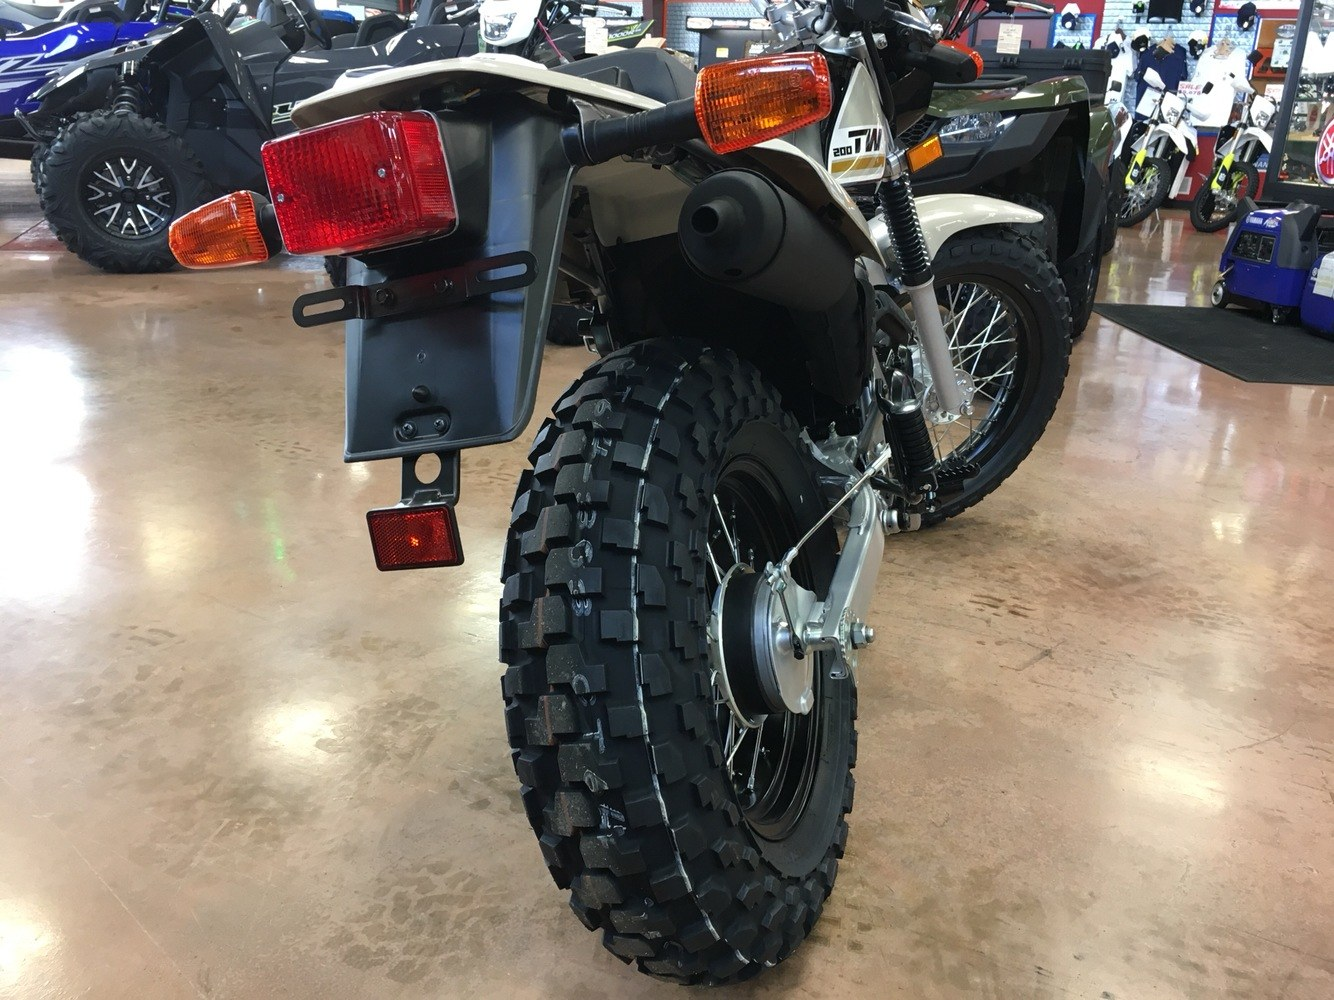 2019 Yamaha TW200 in Evansville, Indiana - Photo 28